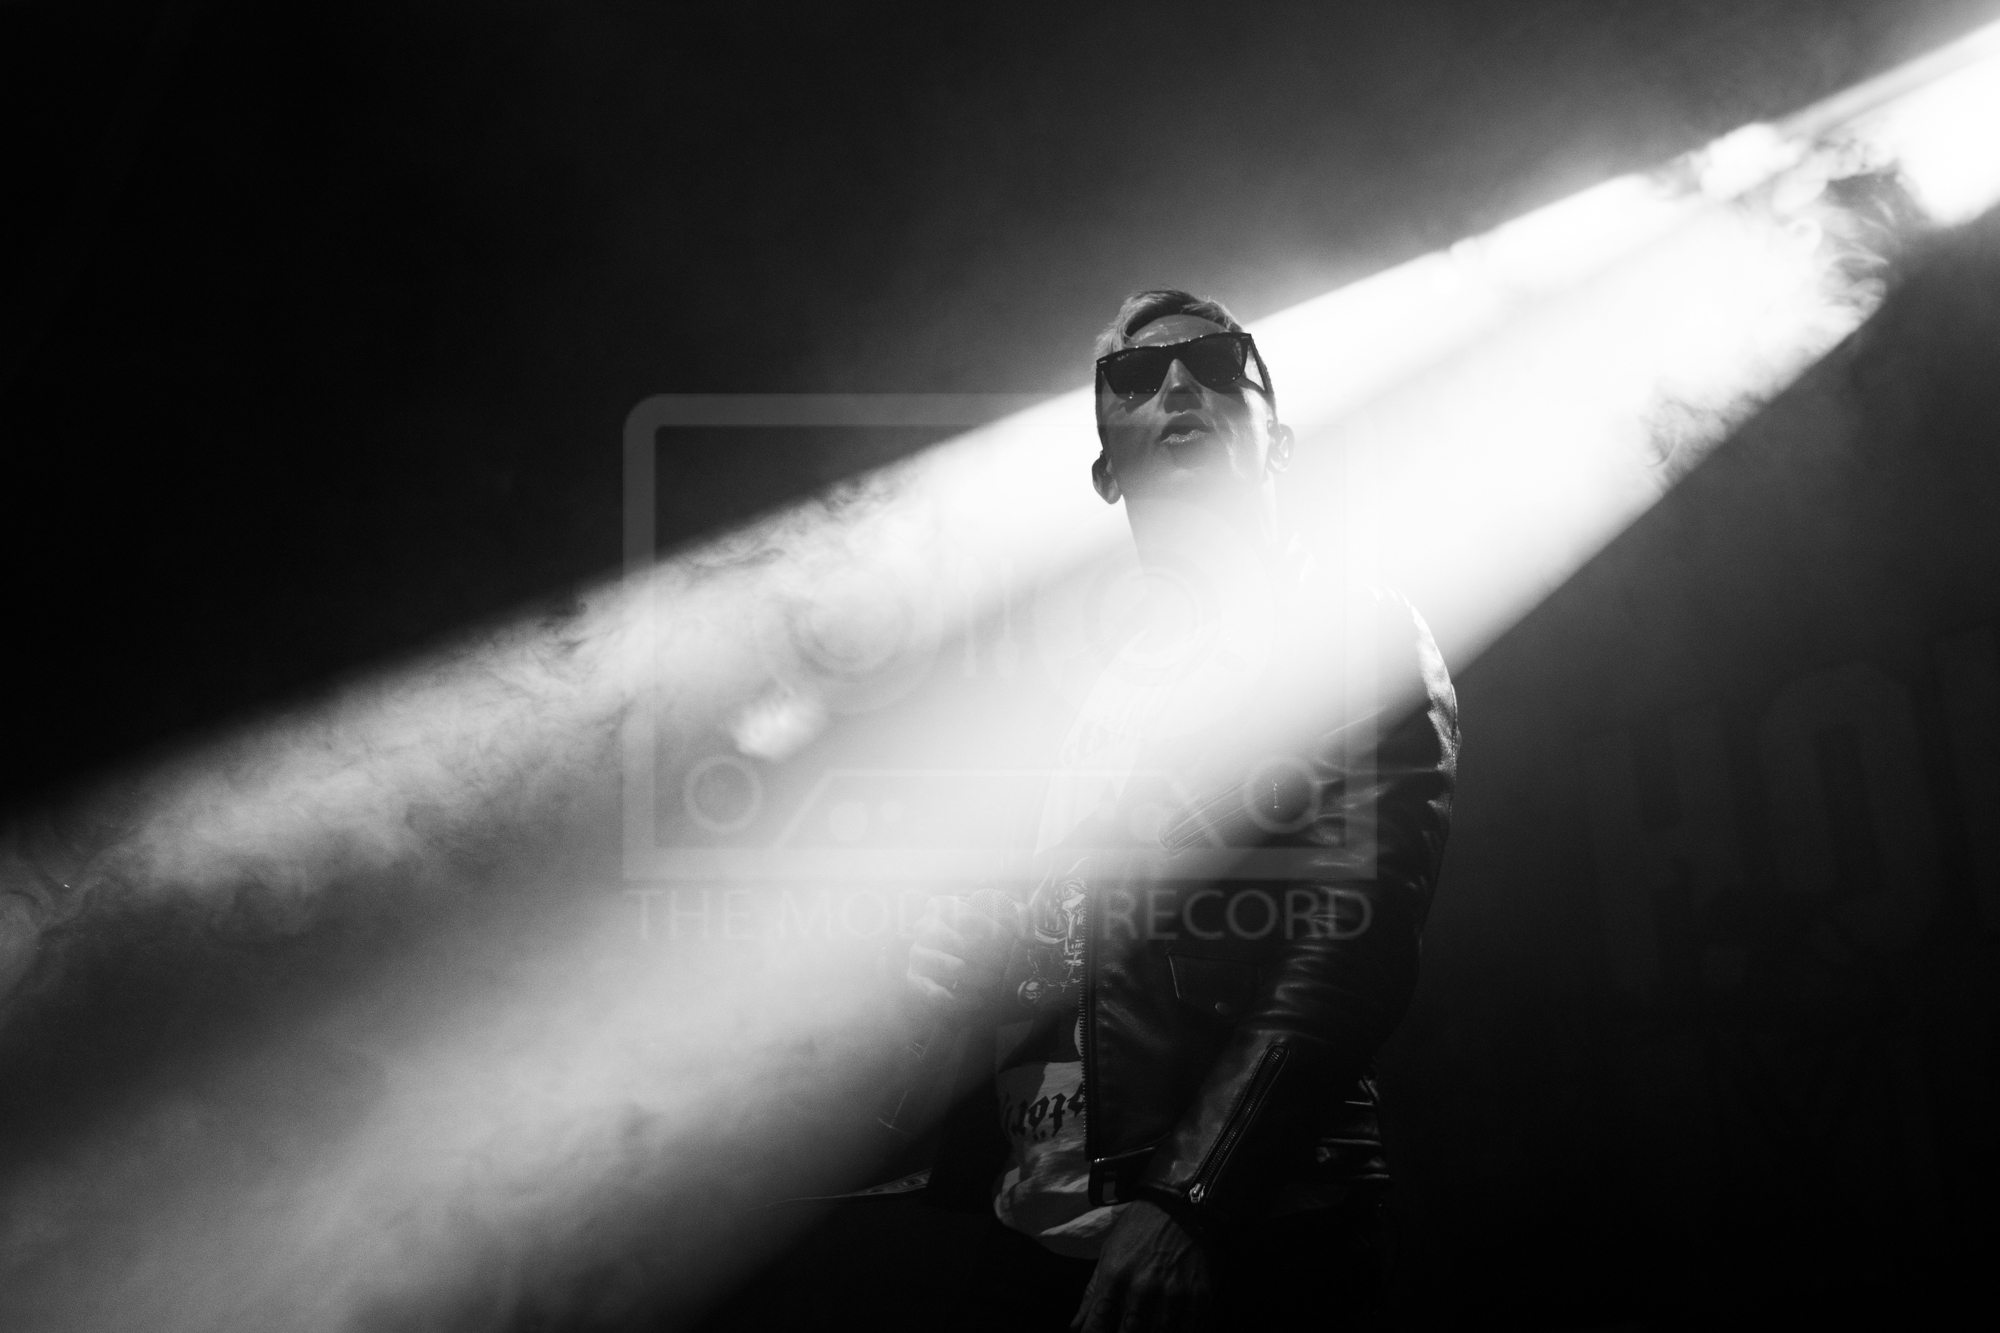 Hollywood Undead - 01.05.19 - PICTURE BY WILL GORMAN PHOTOGRAPHY-2923.JPG